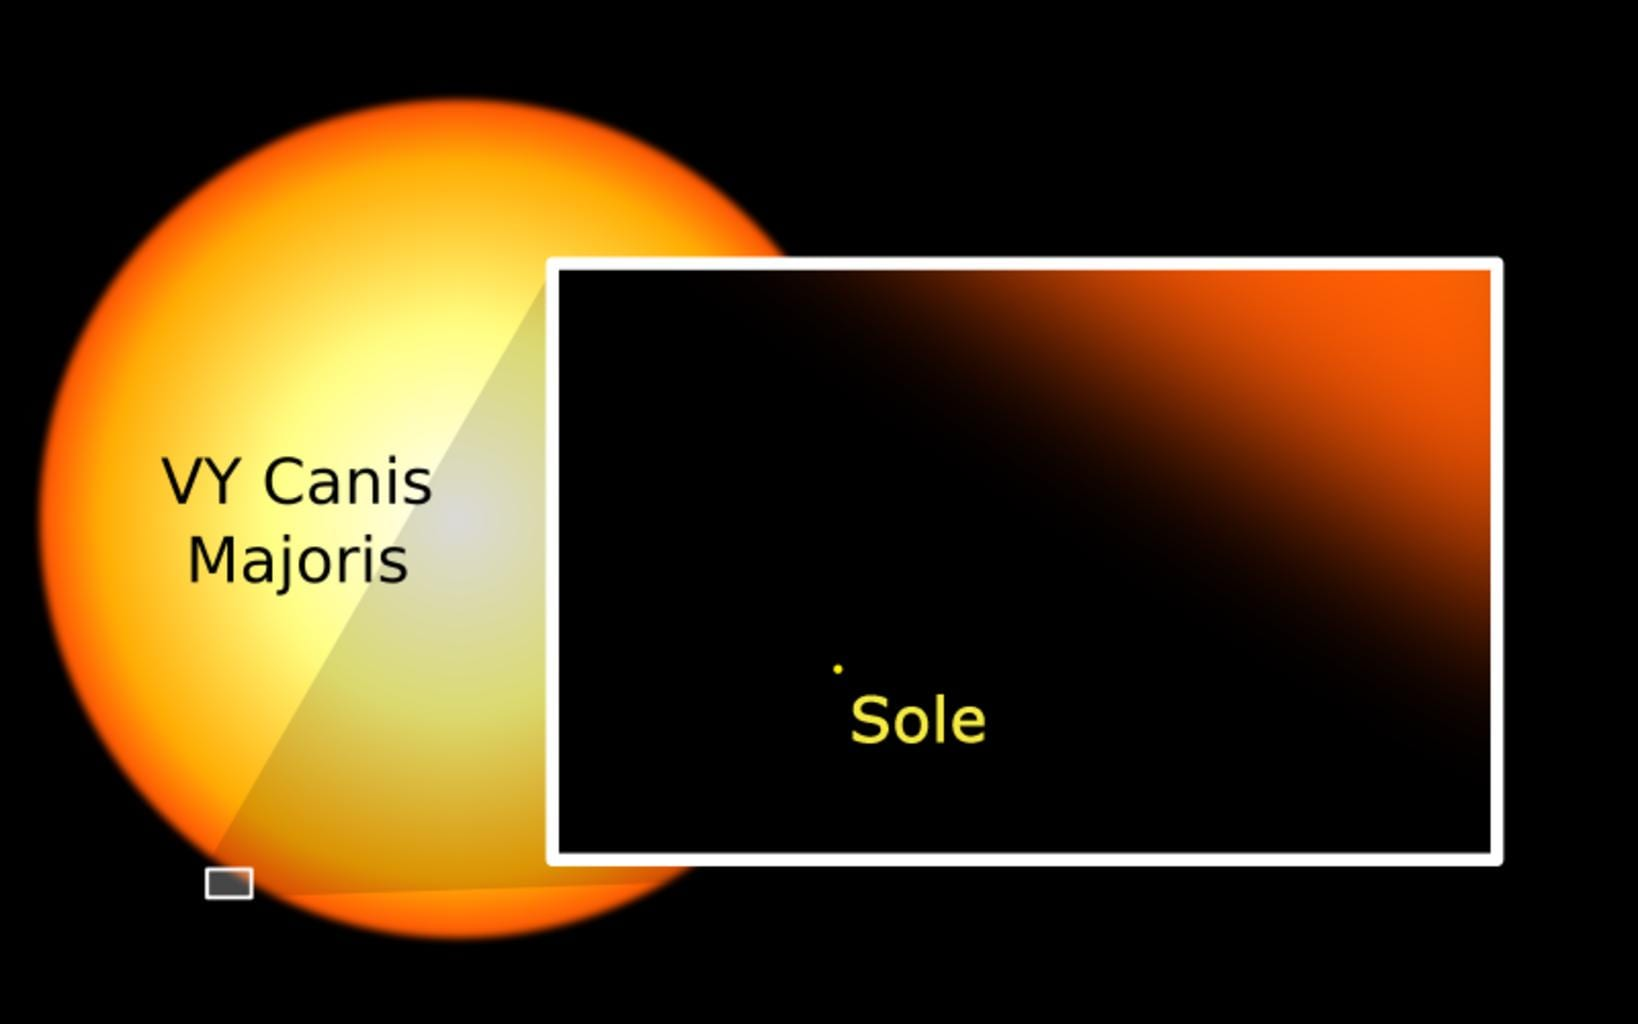 vy canis majoris facts